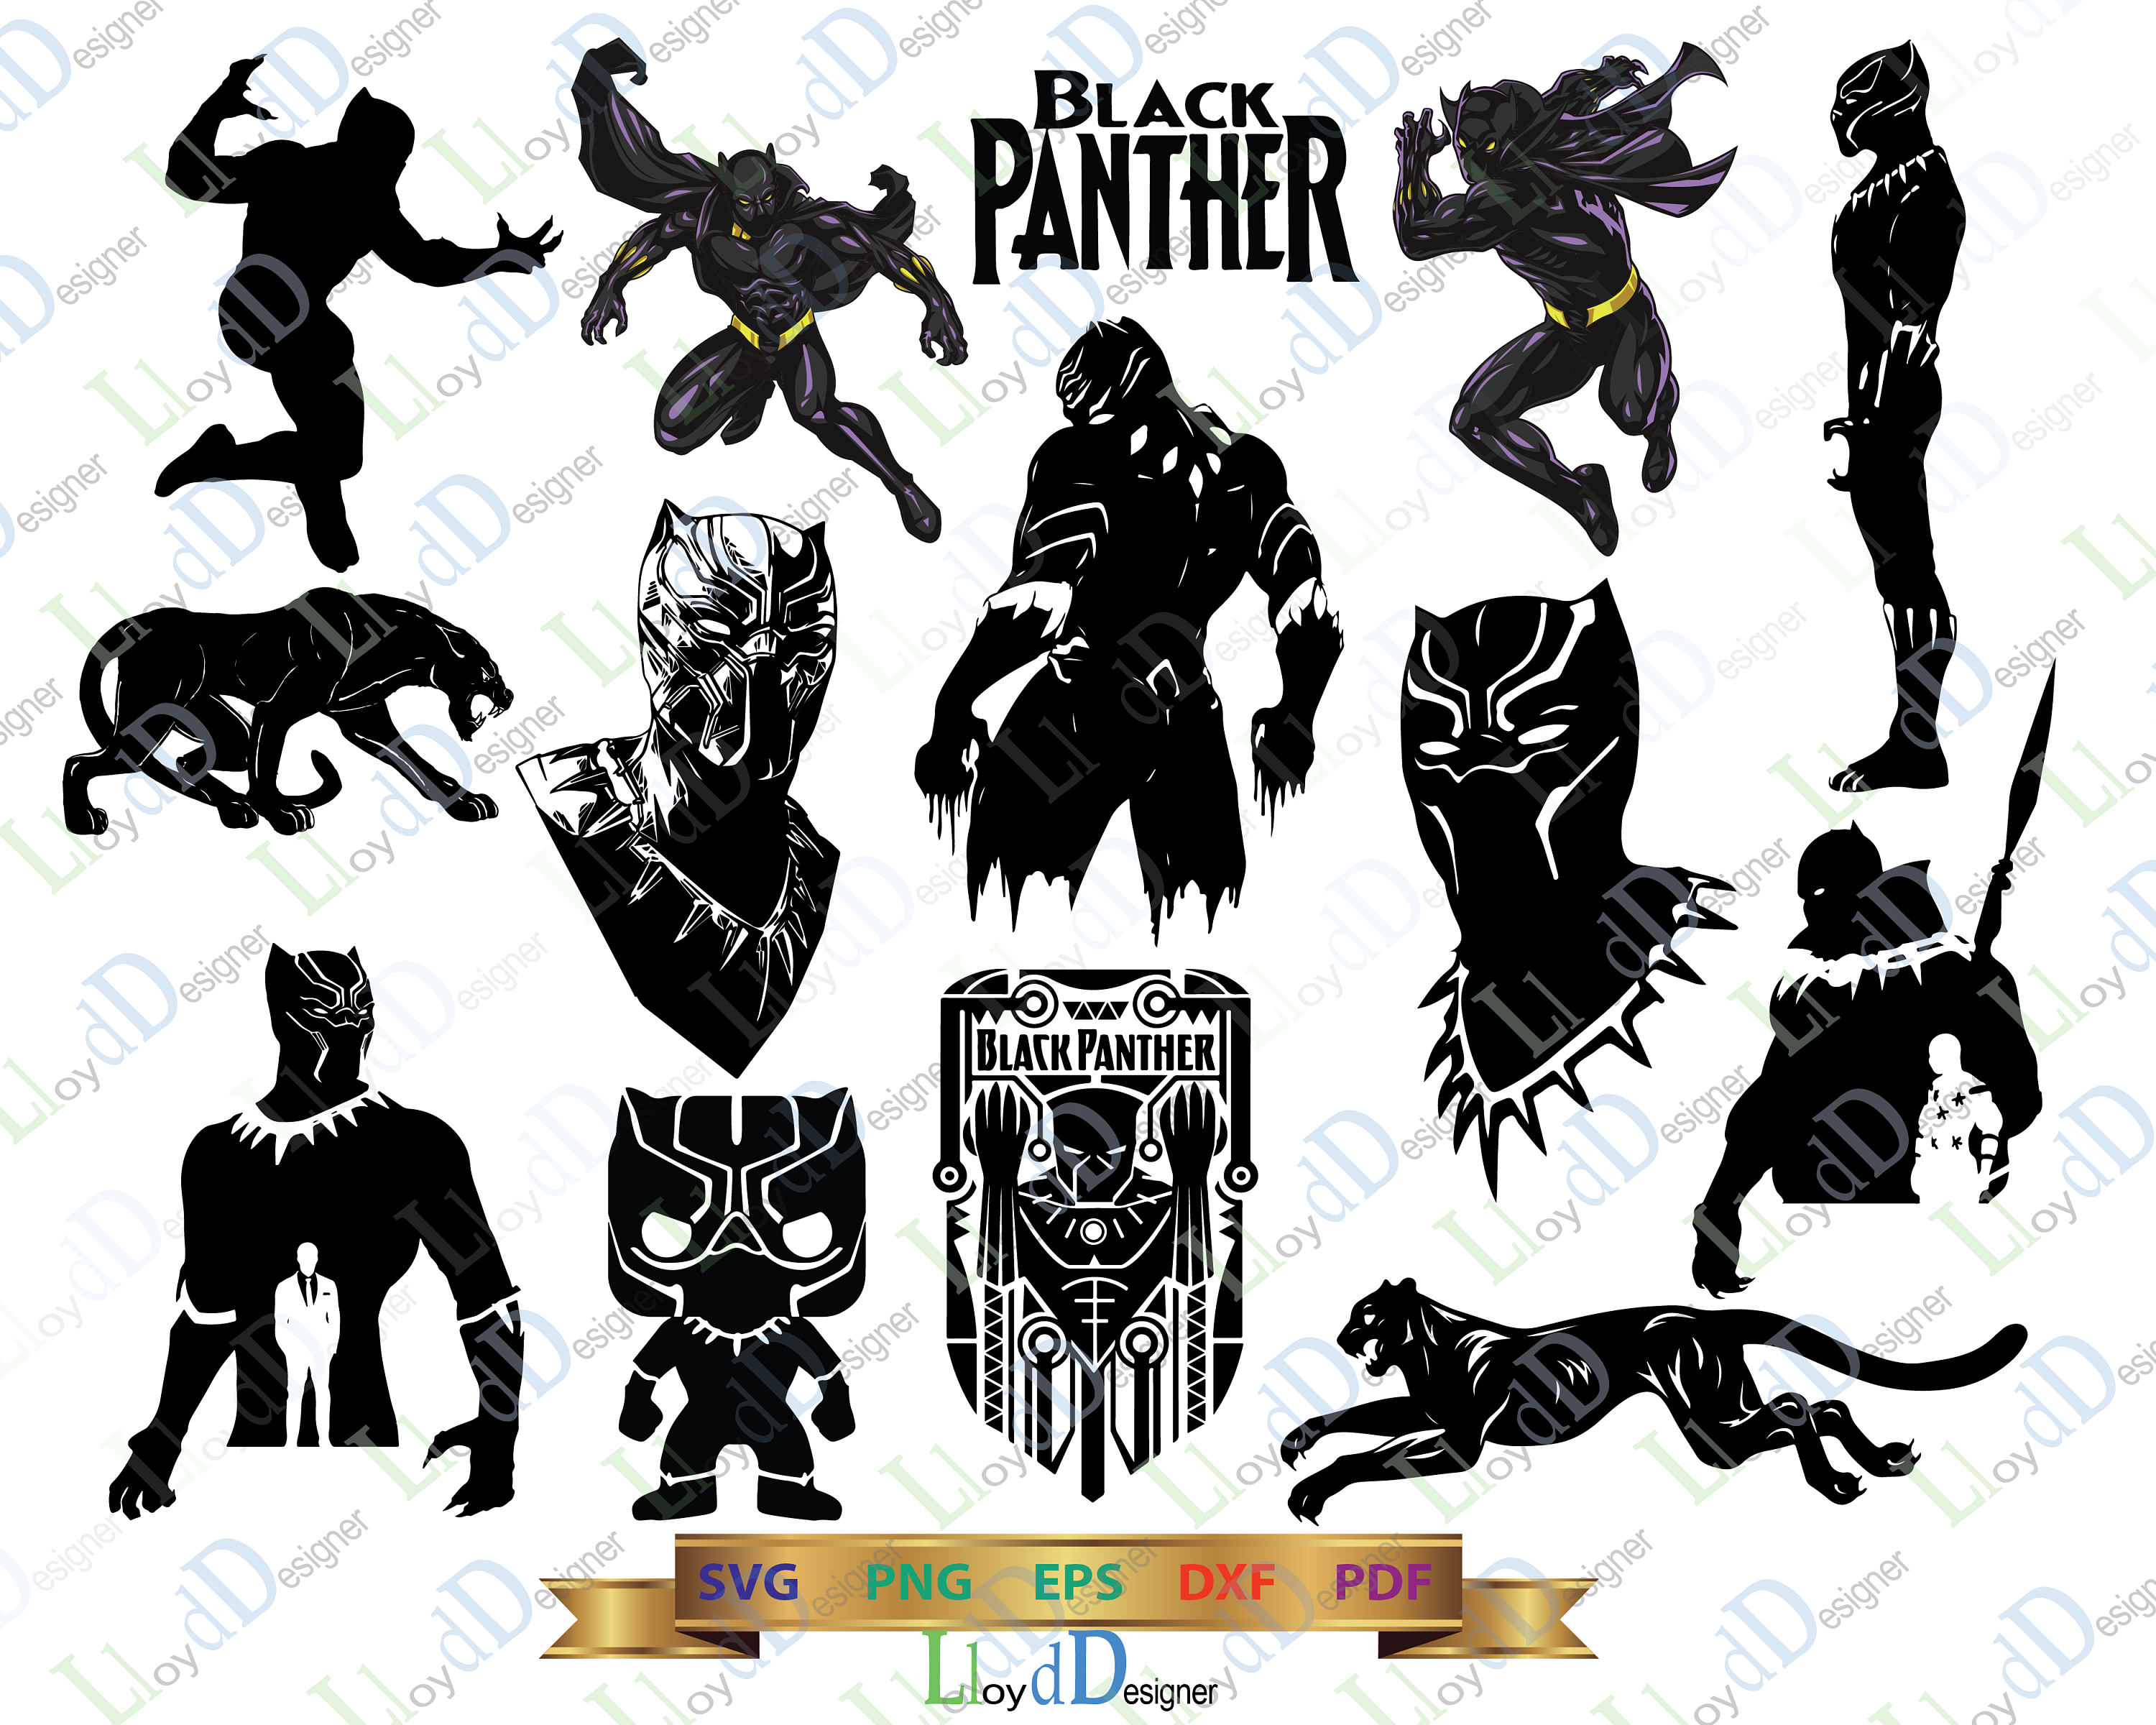 Black Panther Marvel Clipart.